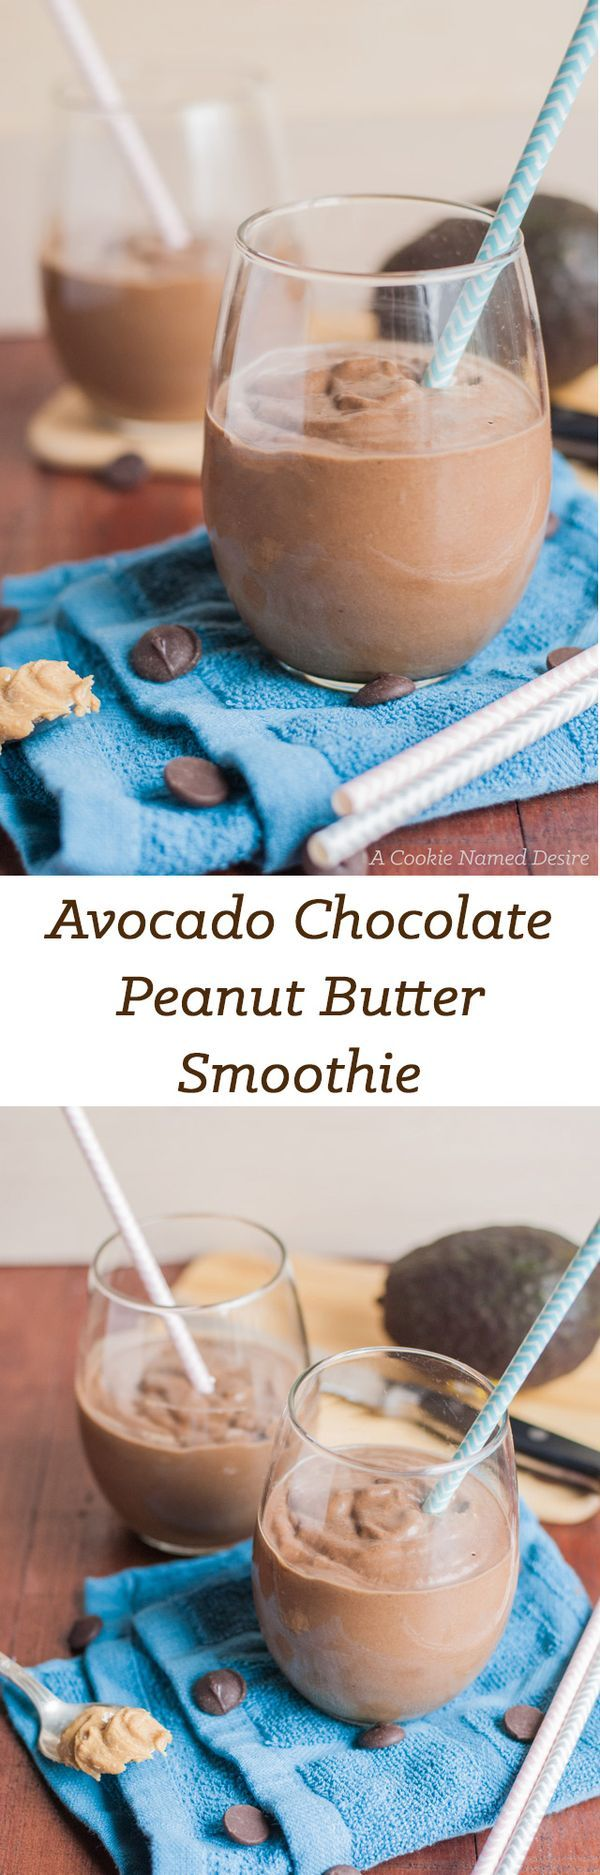 avocado-chocolate-peanut-butter-smoothie